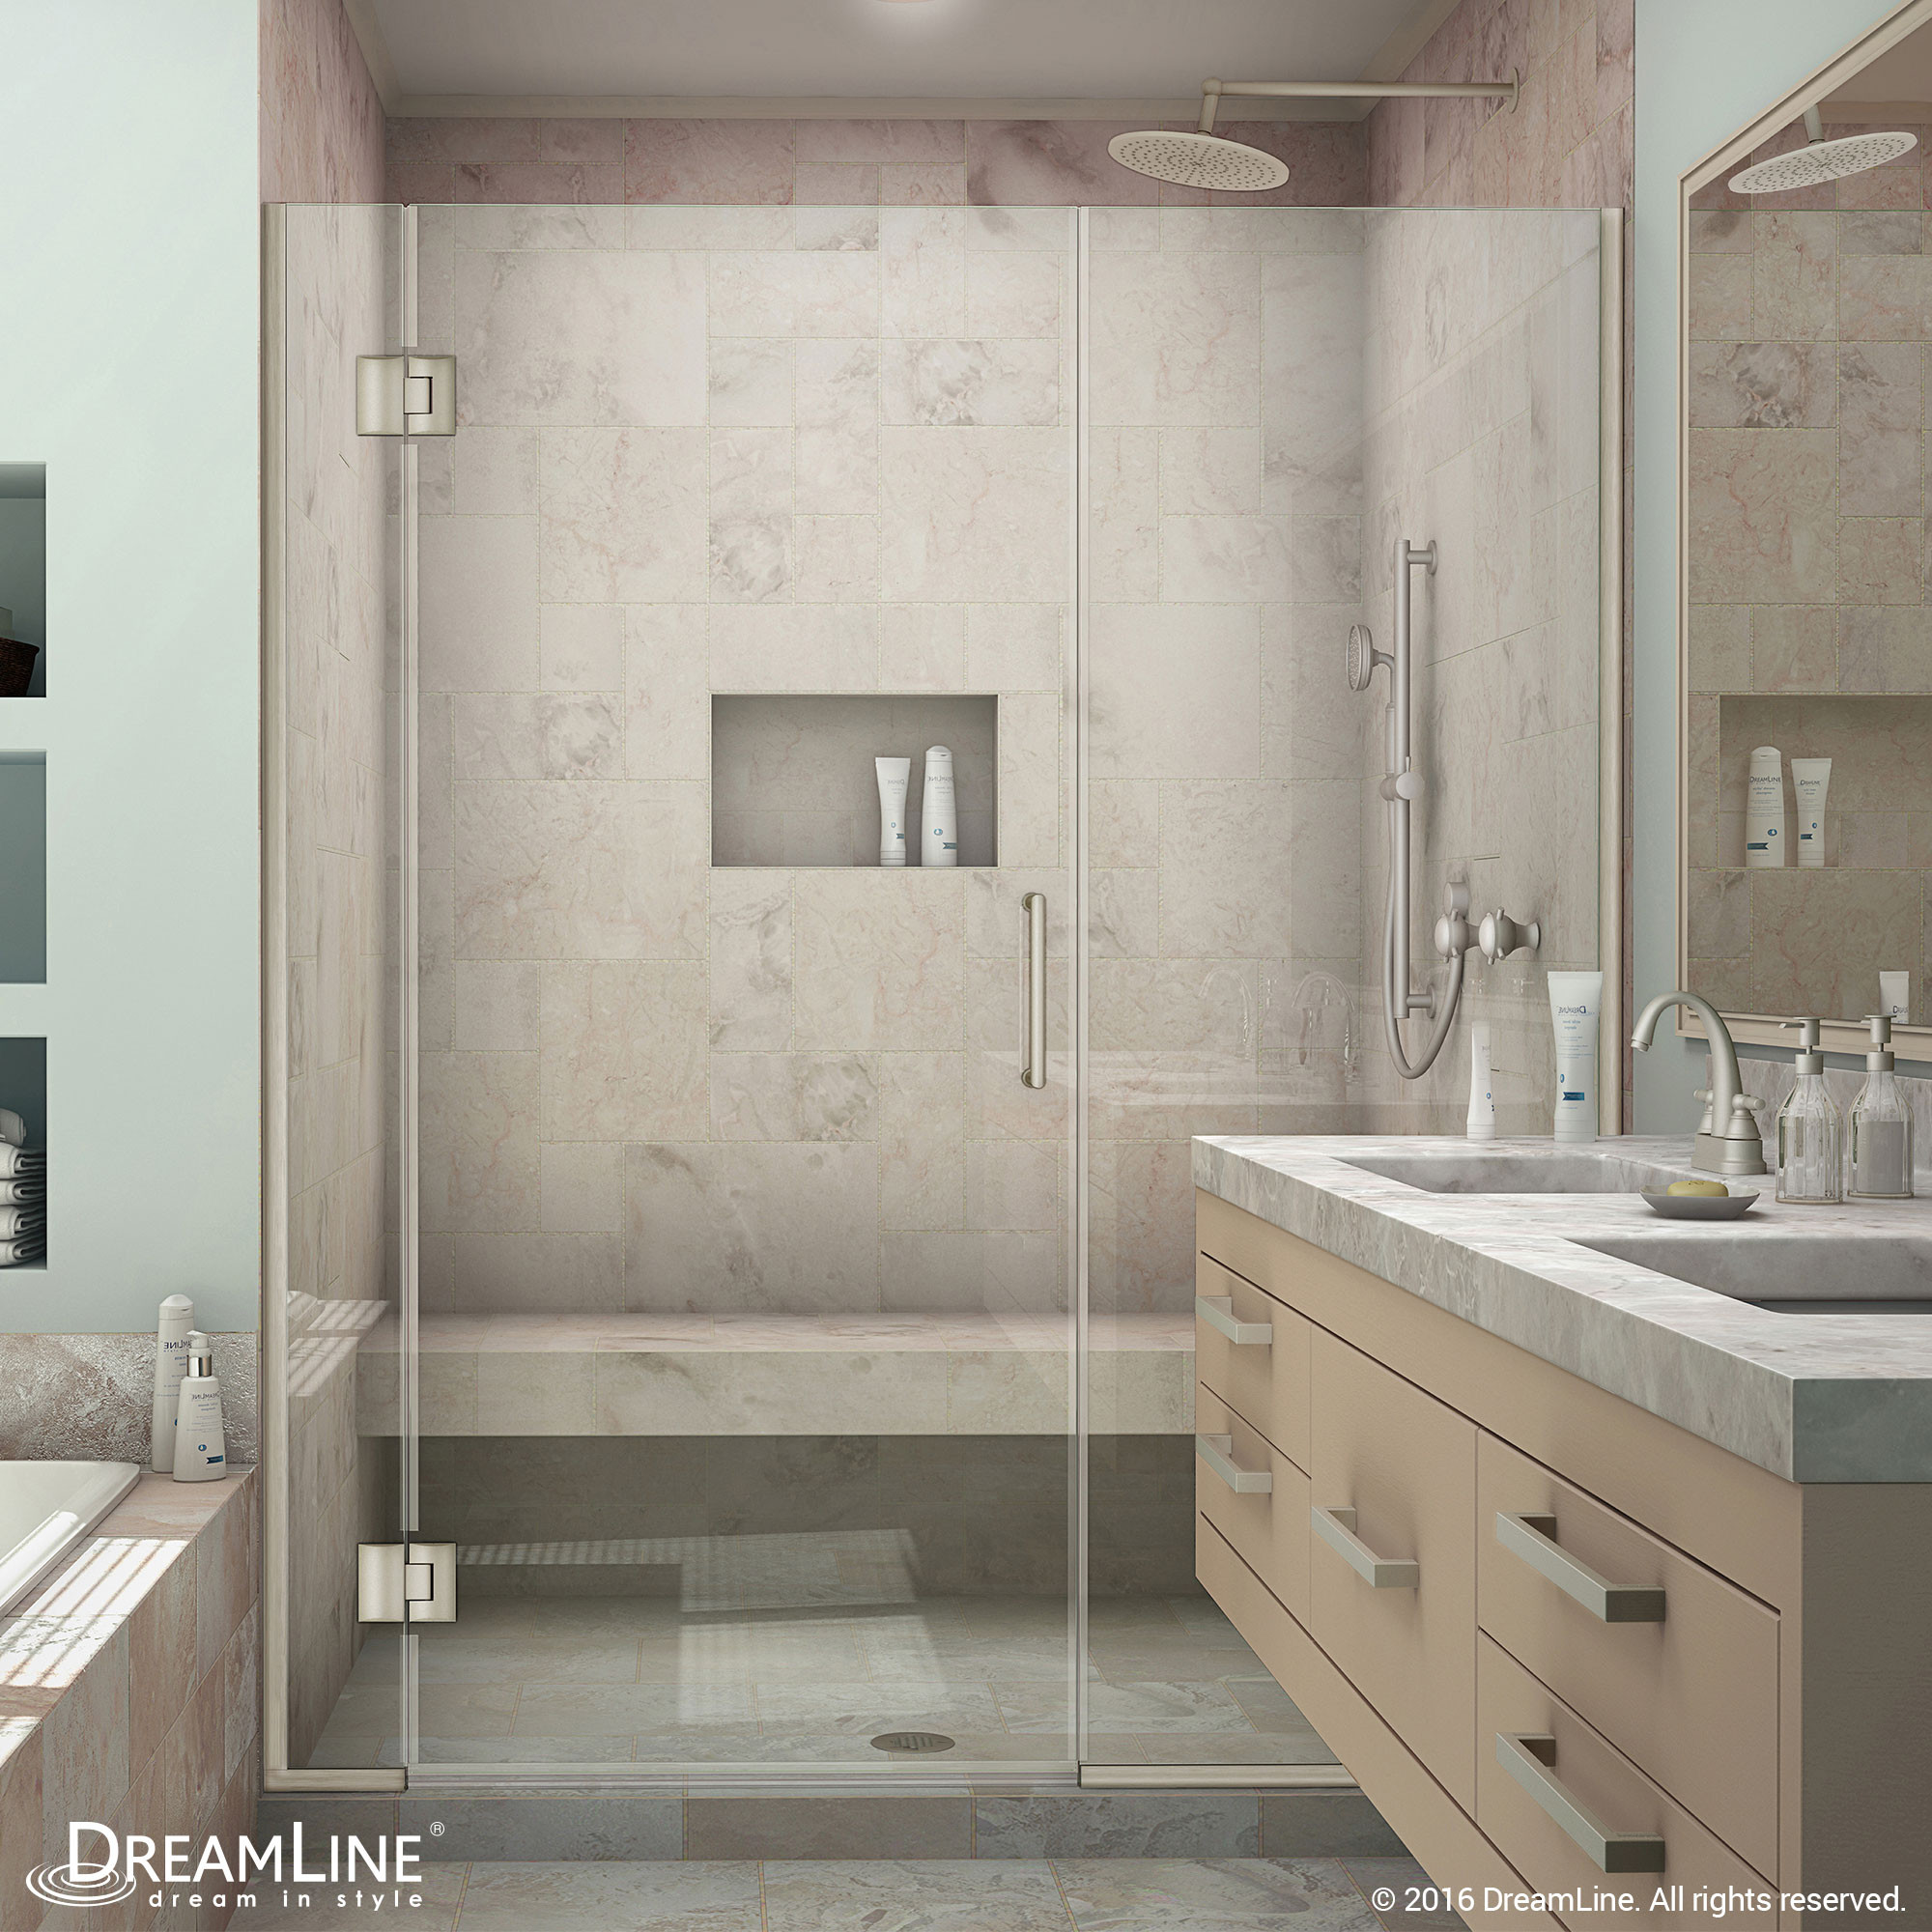 DreamLine D1240672-04 Unidoor-X 36 - 36 1/2 in. W x 72 in. H Hinged Shower Door in Brushed Nickel